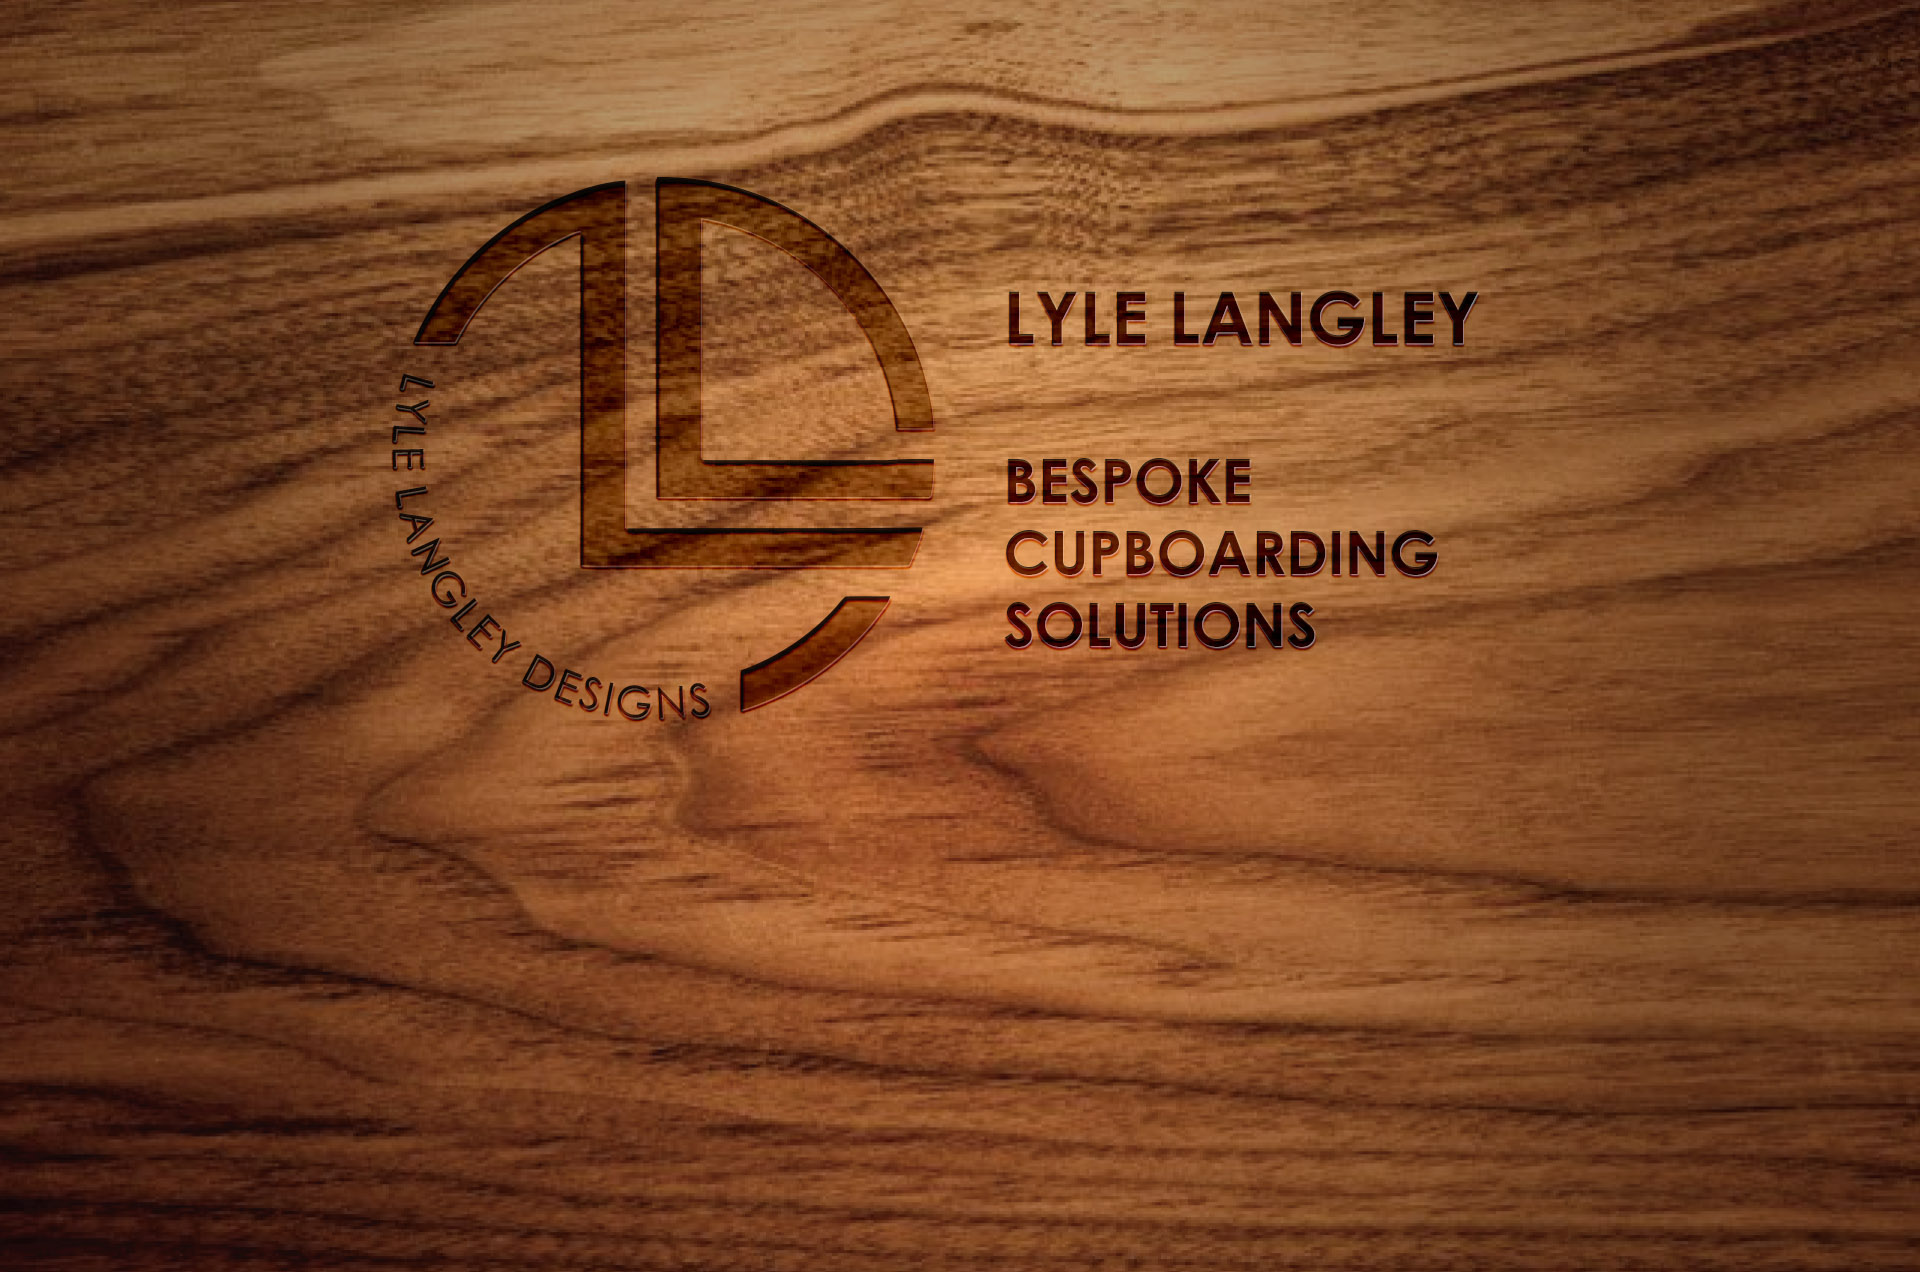 Lyle Langley Designs